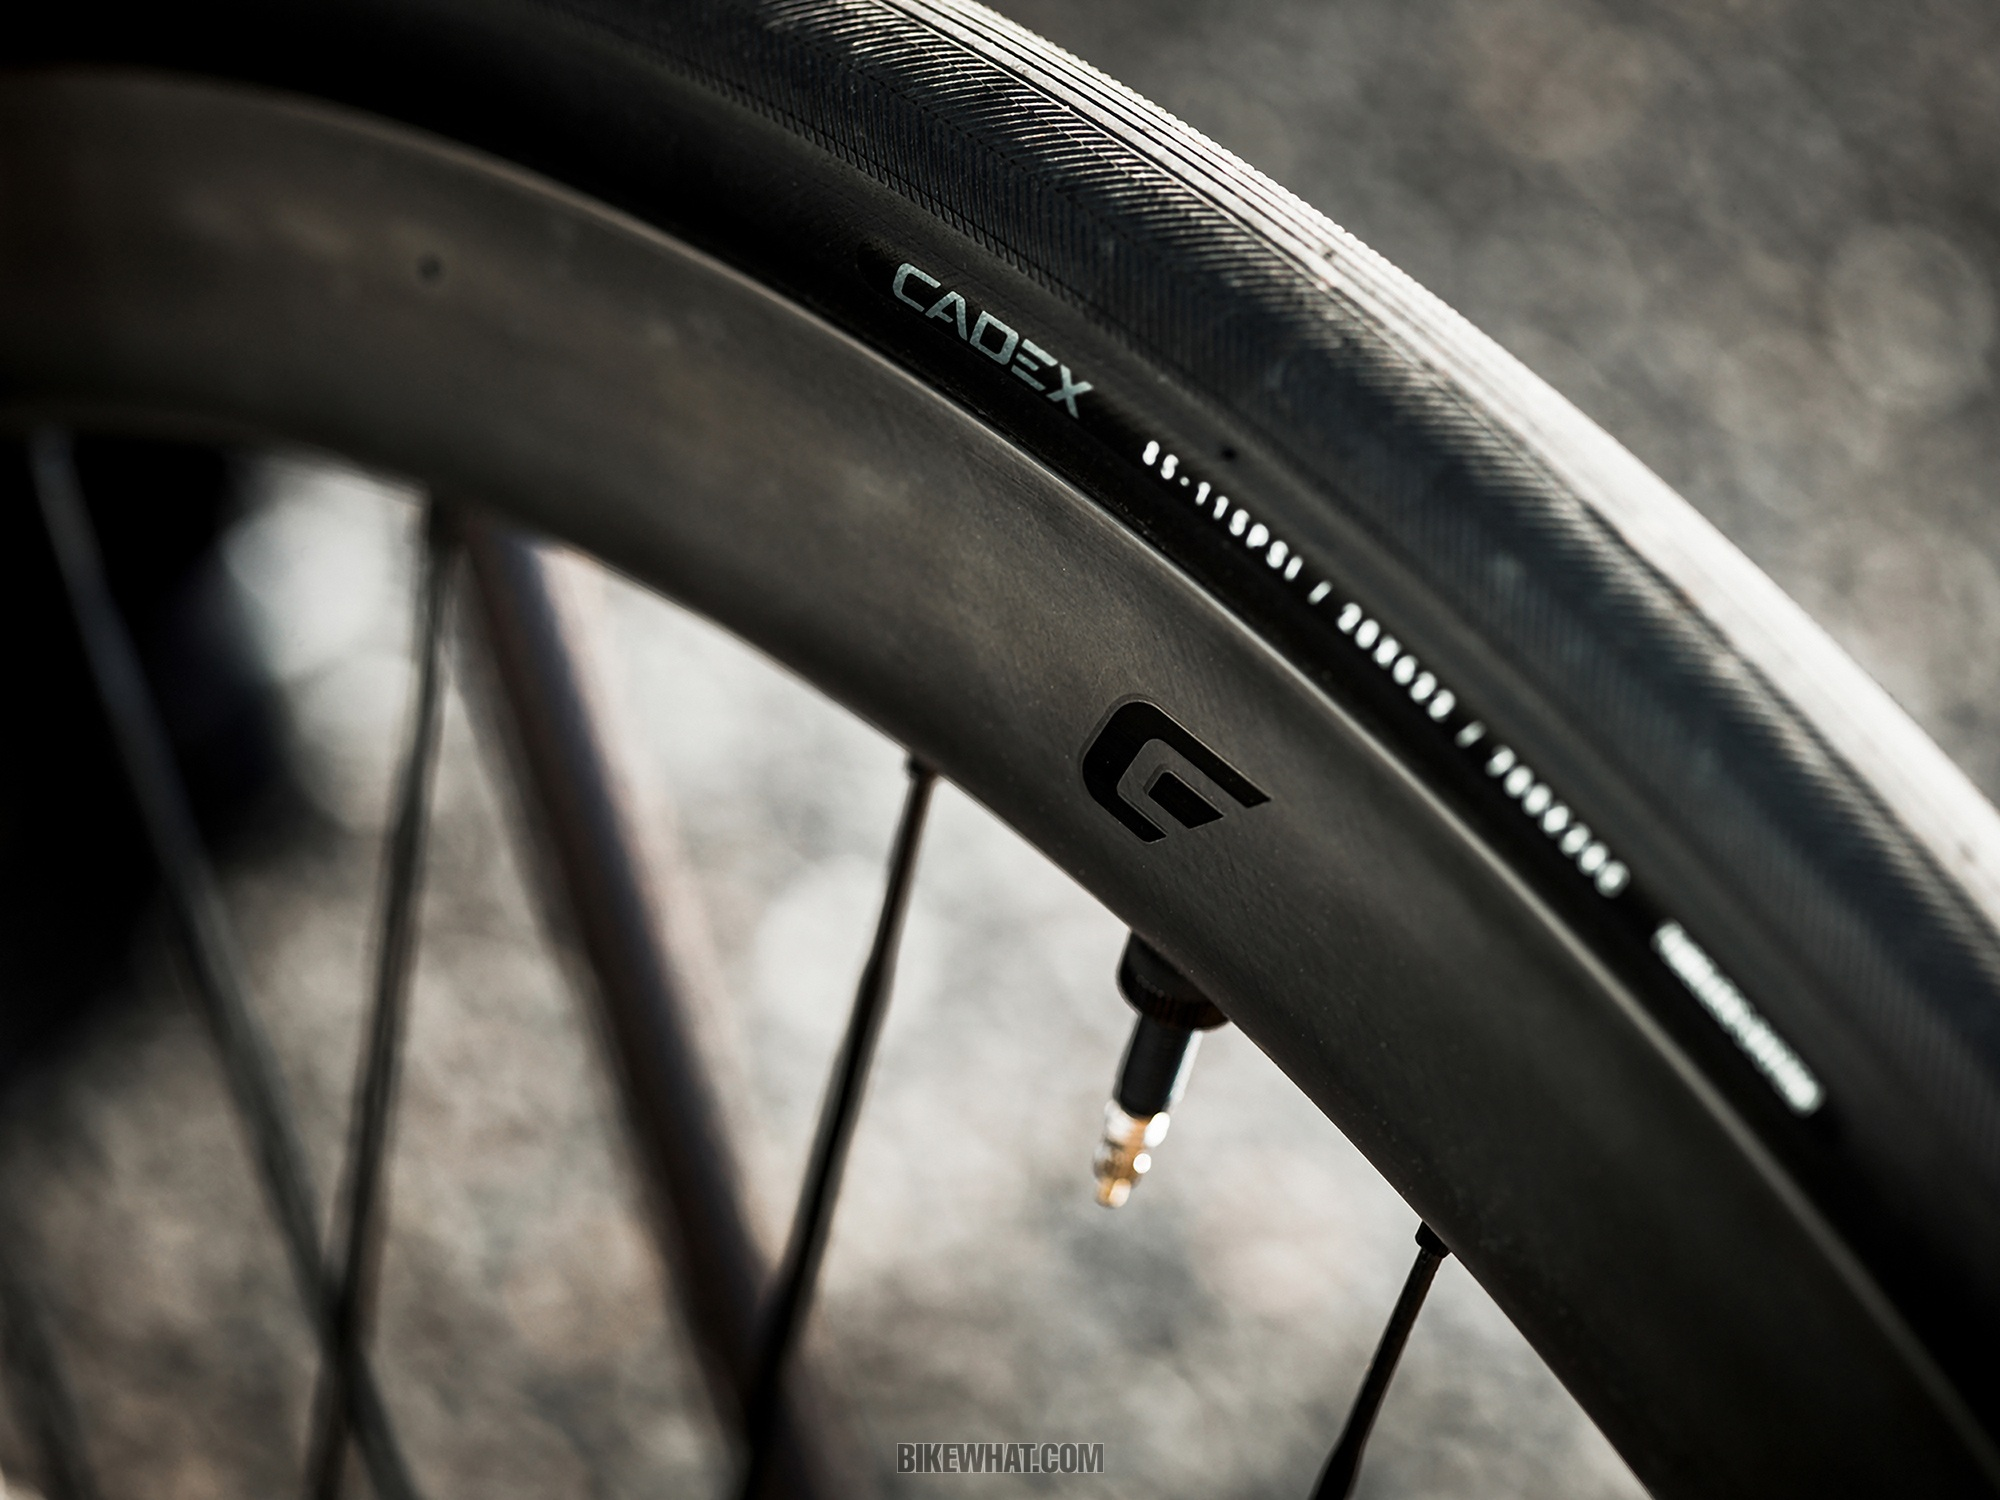 Gear_Cadex_Race-Tubeless-Tires.jpg